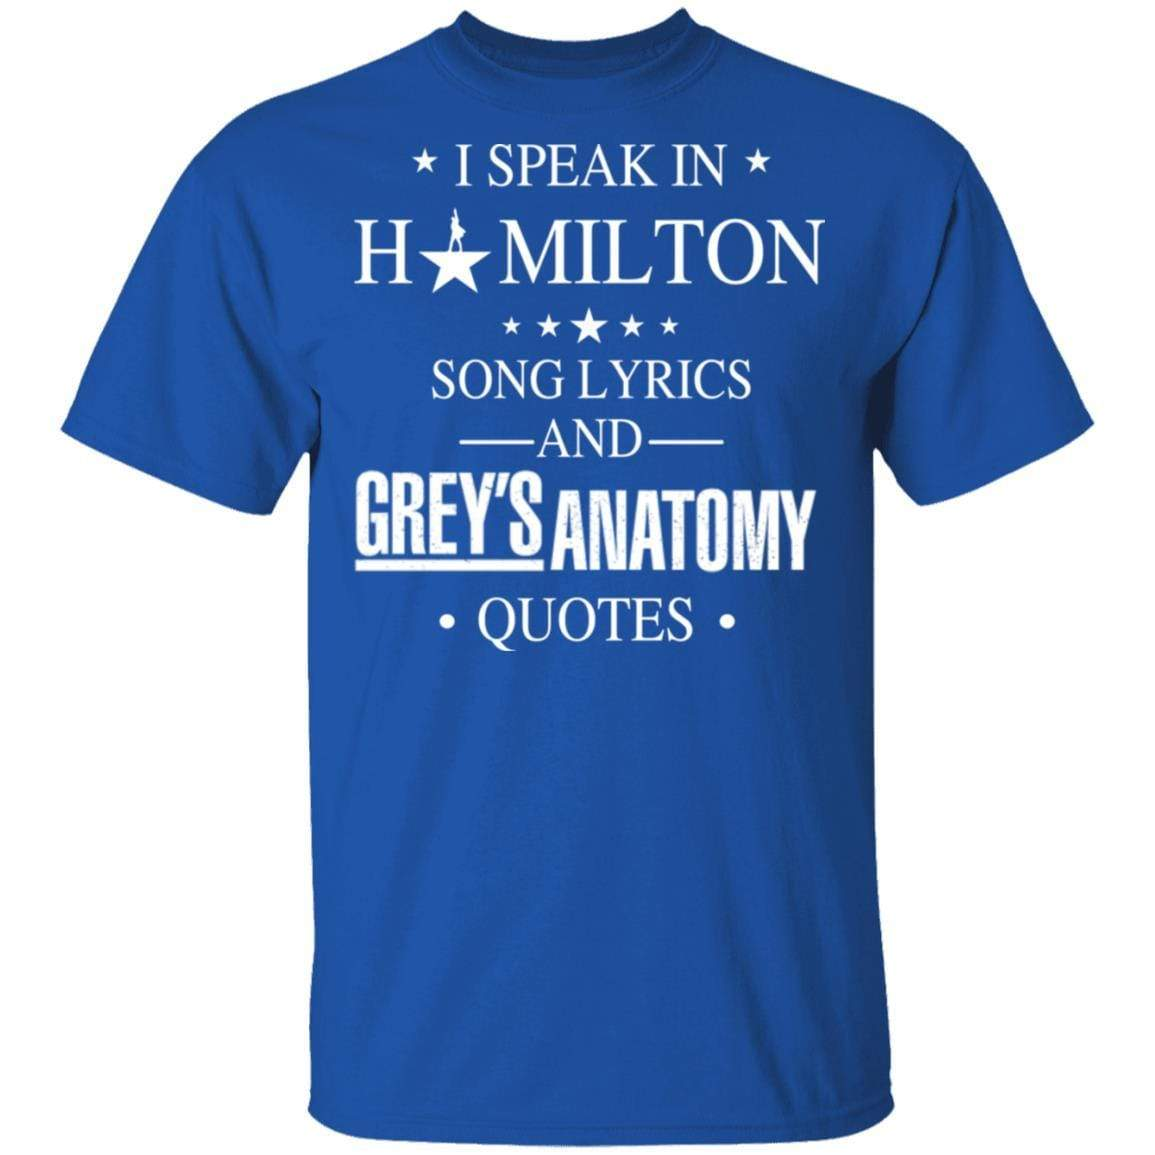 I Speak In Hamilton Song Lyrics And Grey's Anatomy Quotes T-Shirts, Hoodies 1049-9971-88445038-48286 - Tee Ript